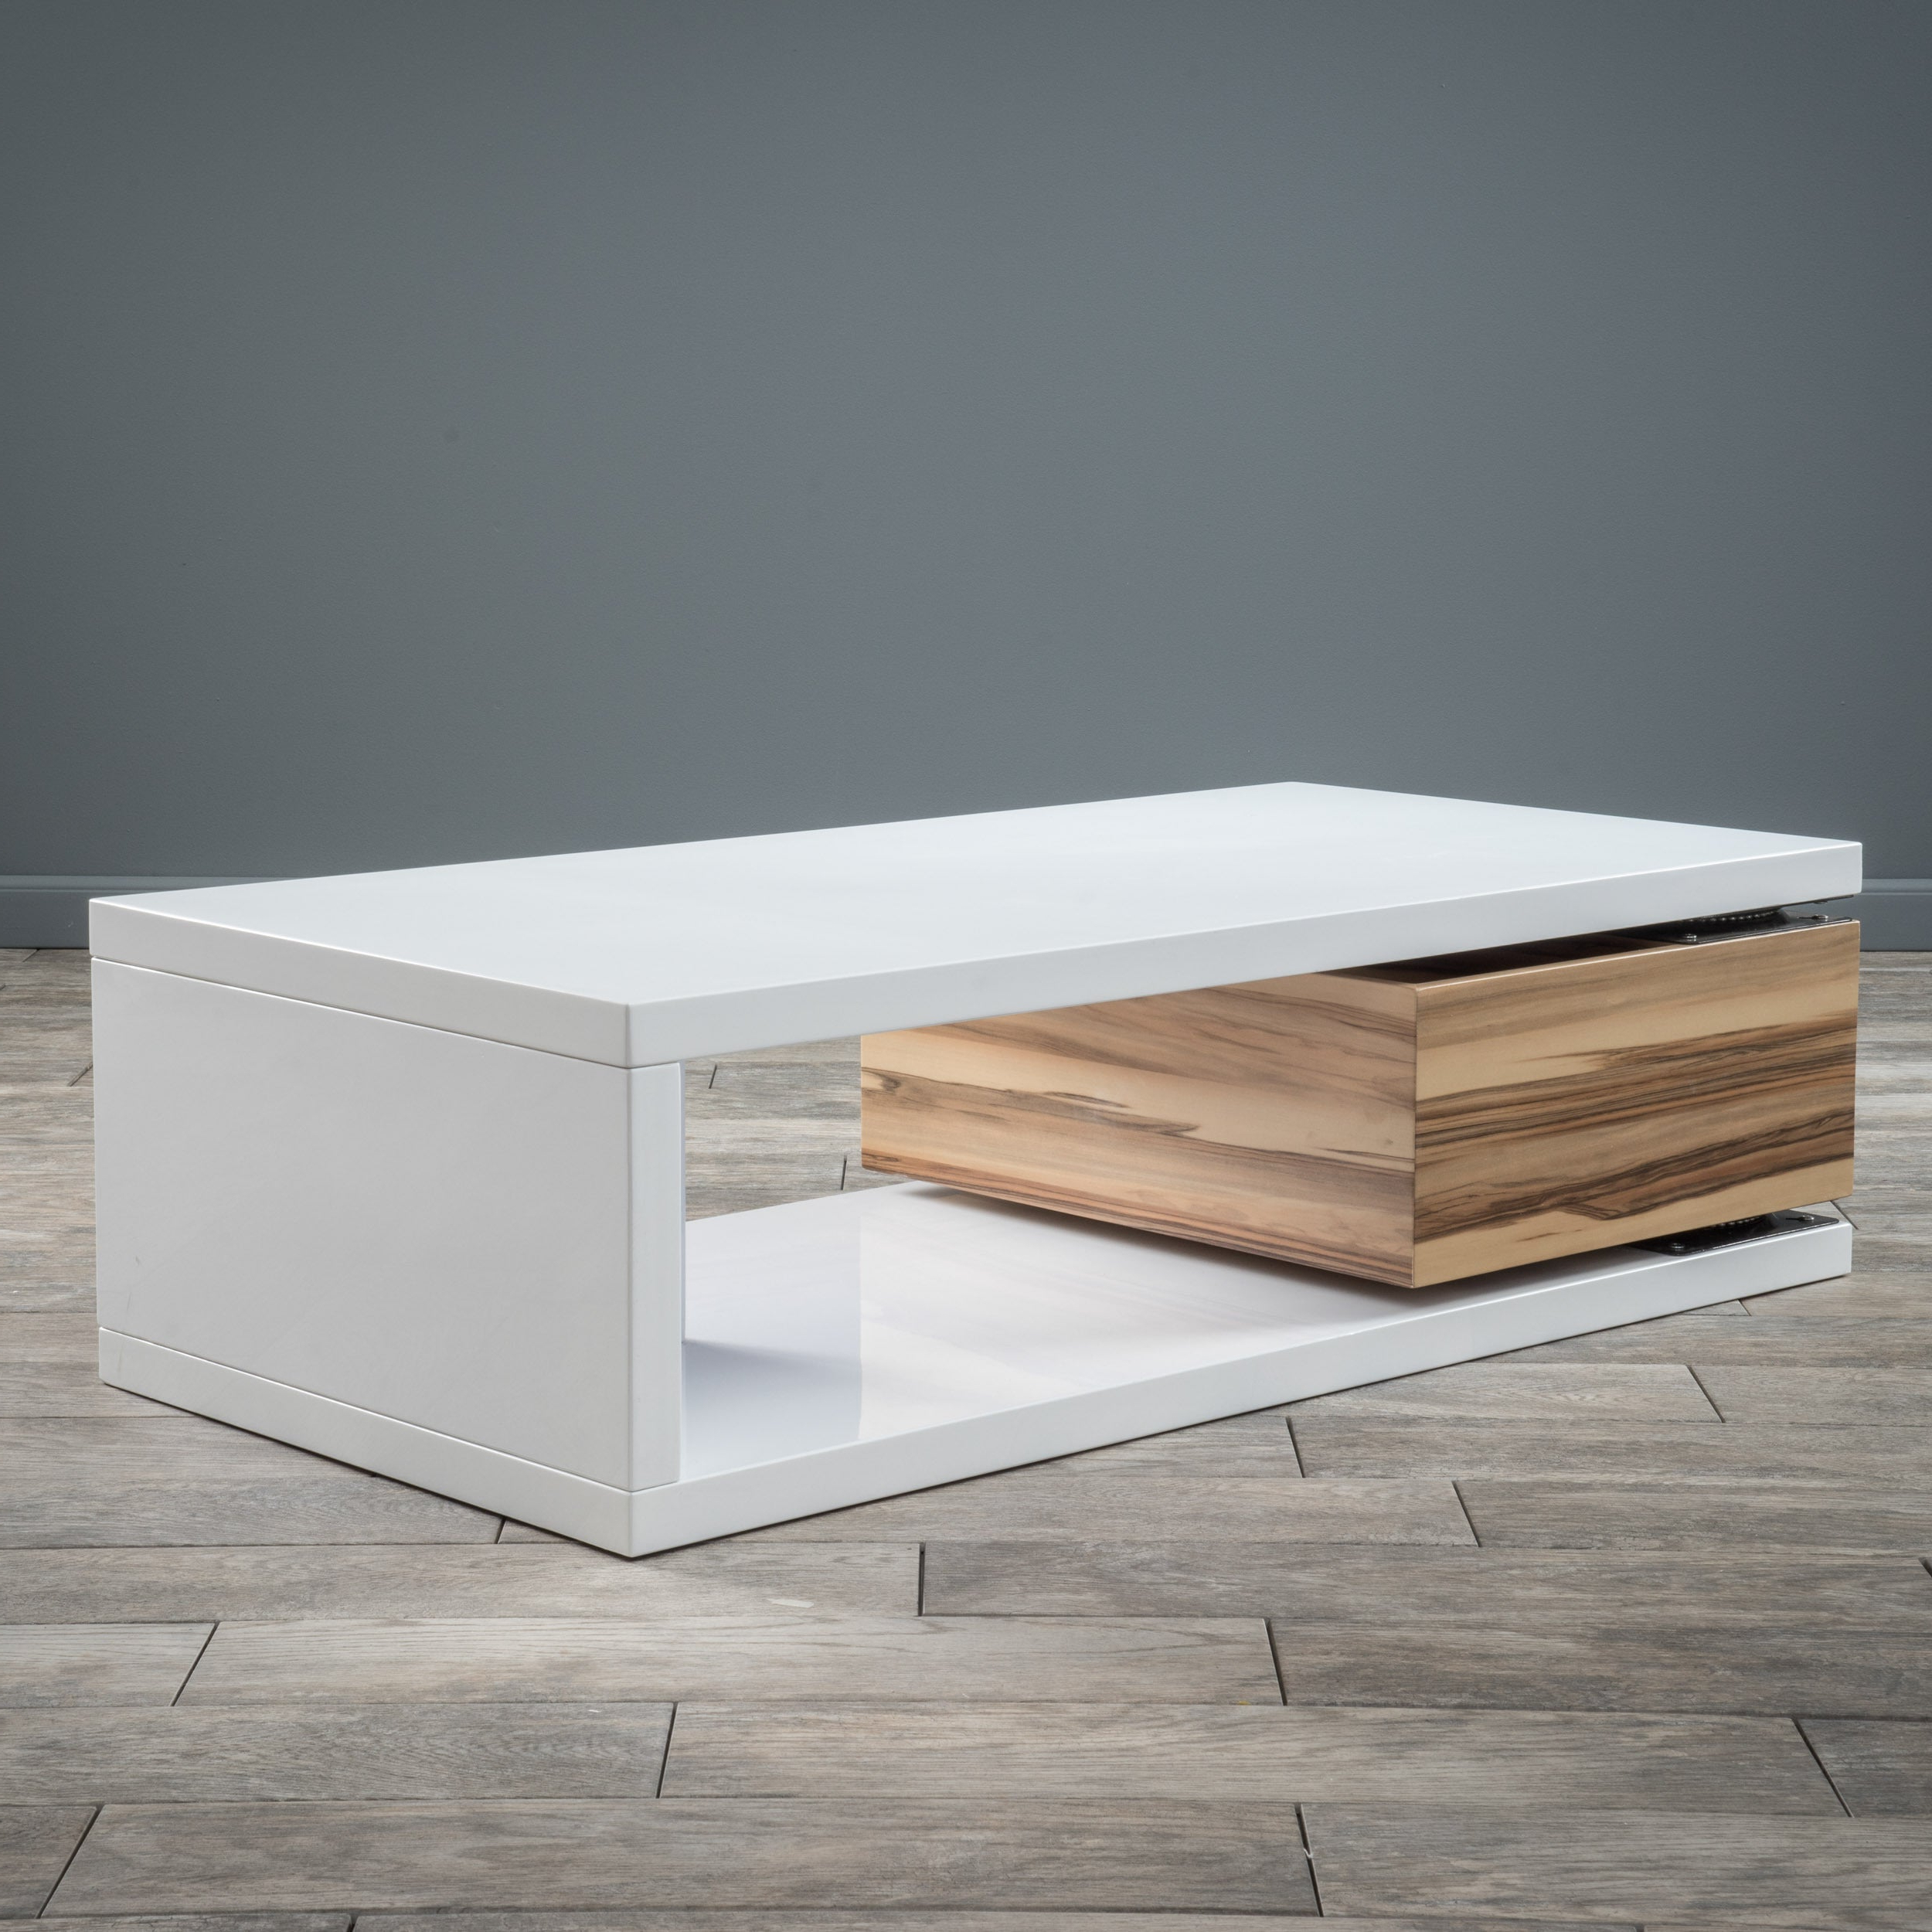 Rectangular Mod Rotatable Coffee Tablechristopher Knight White With Regard To Recent Finbar Modern Rectangle Glass Coffee Tables (View 16 of 20)